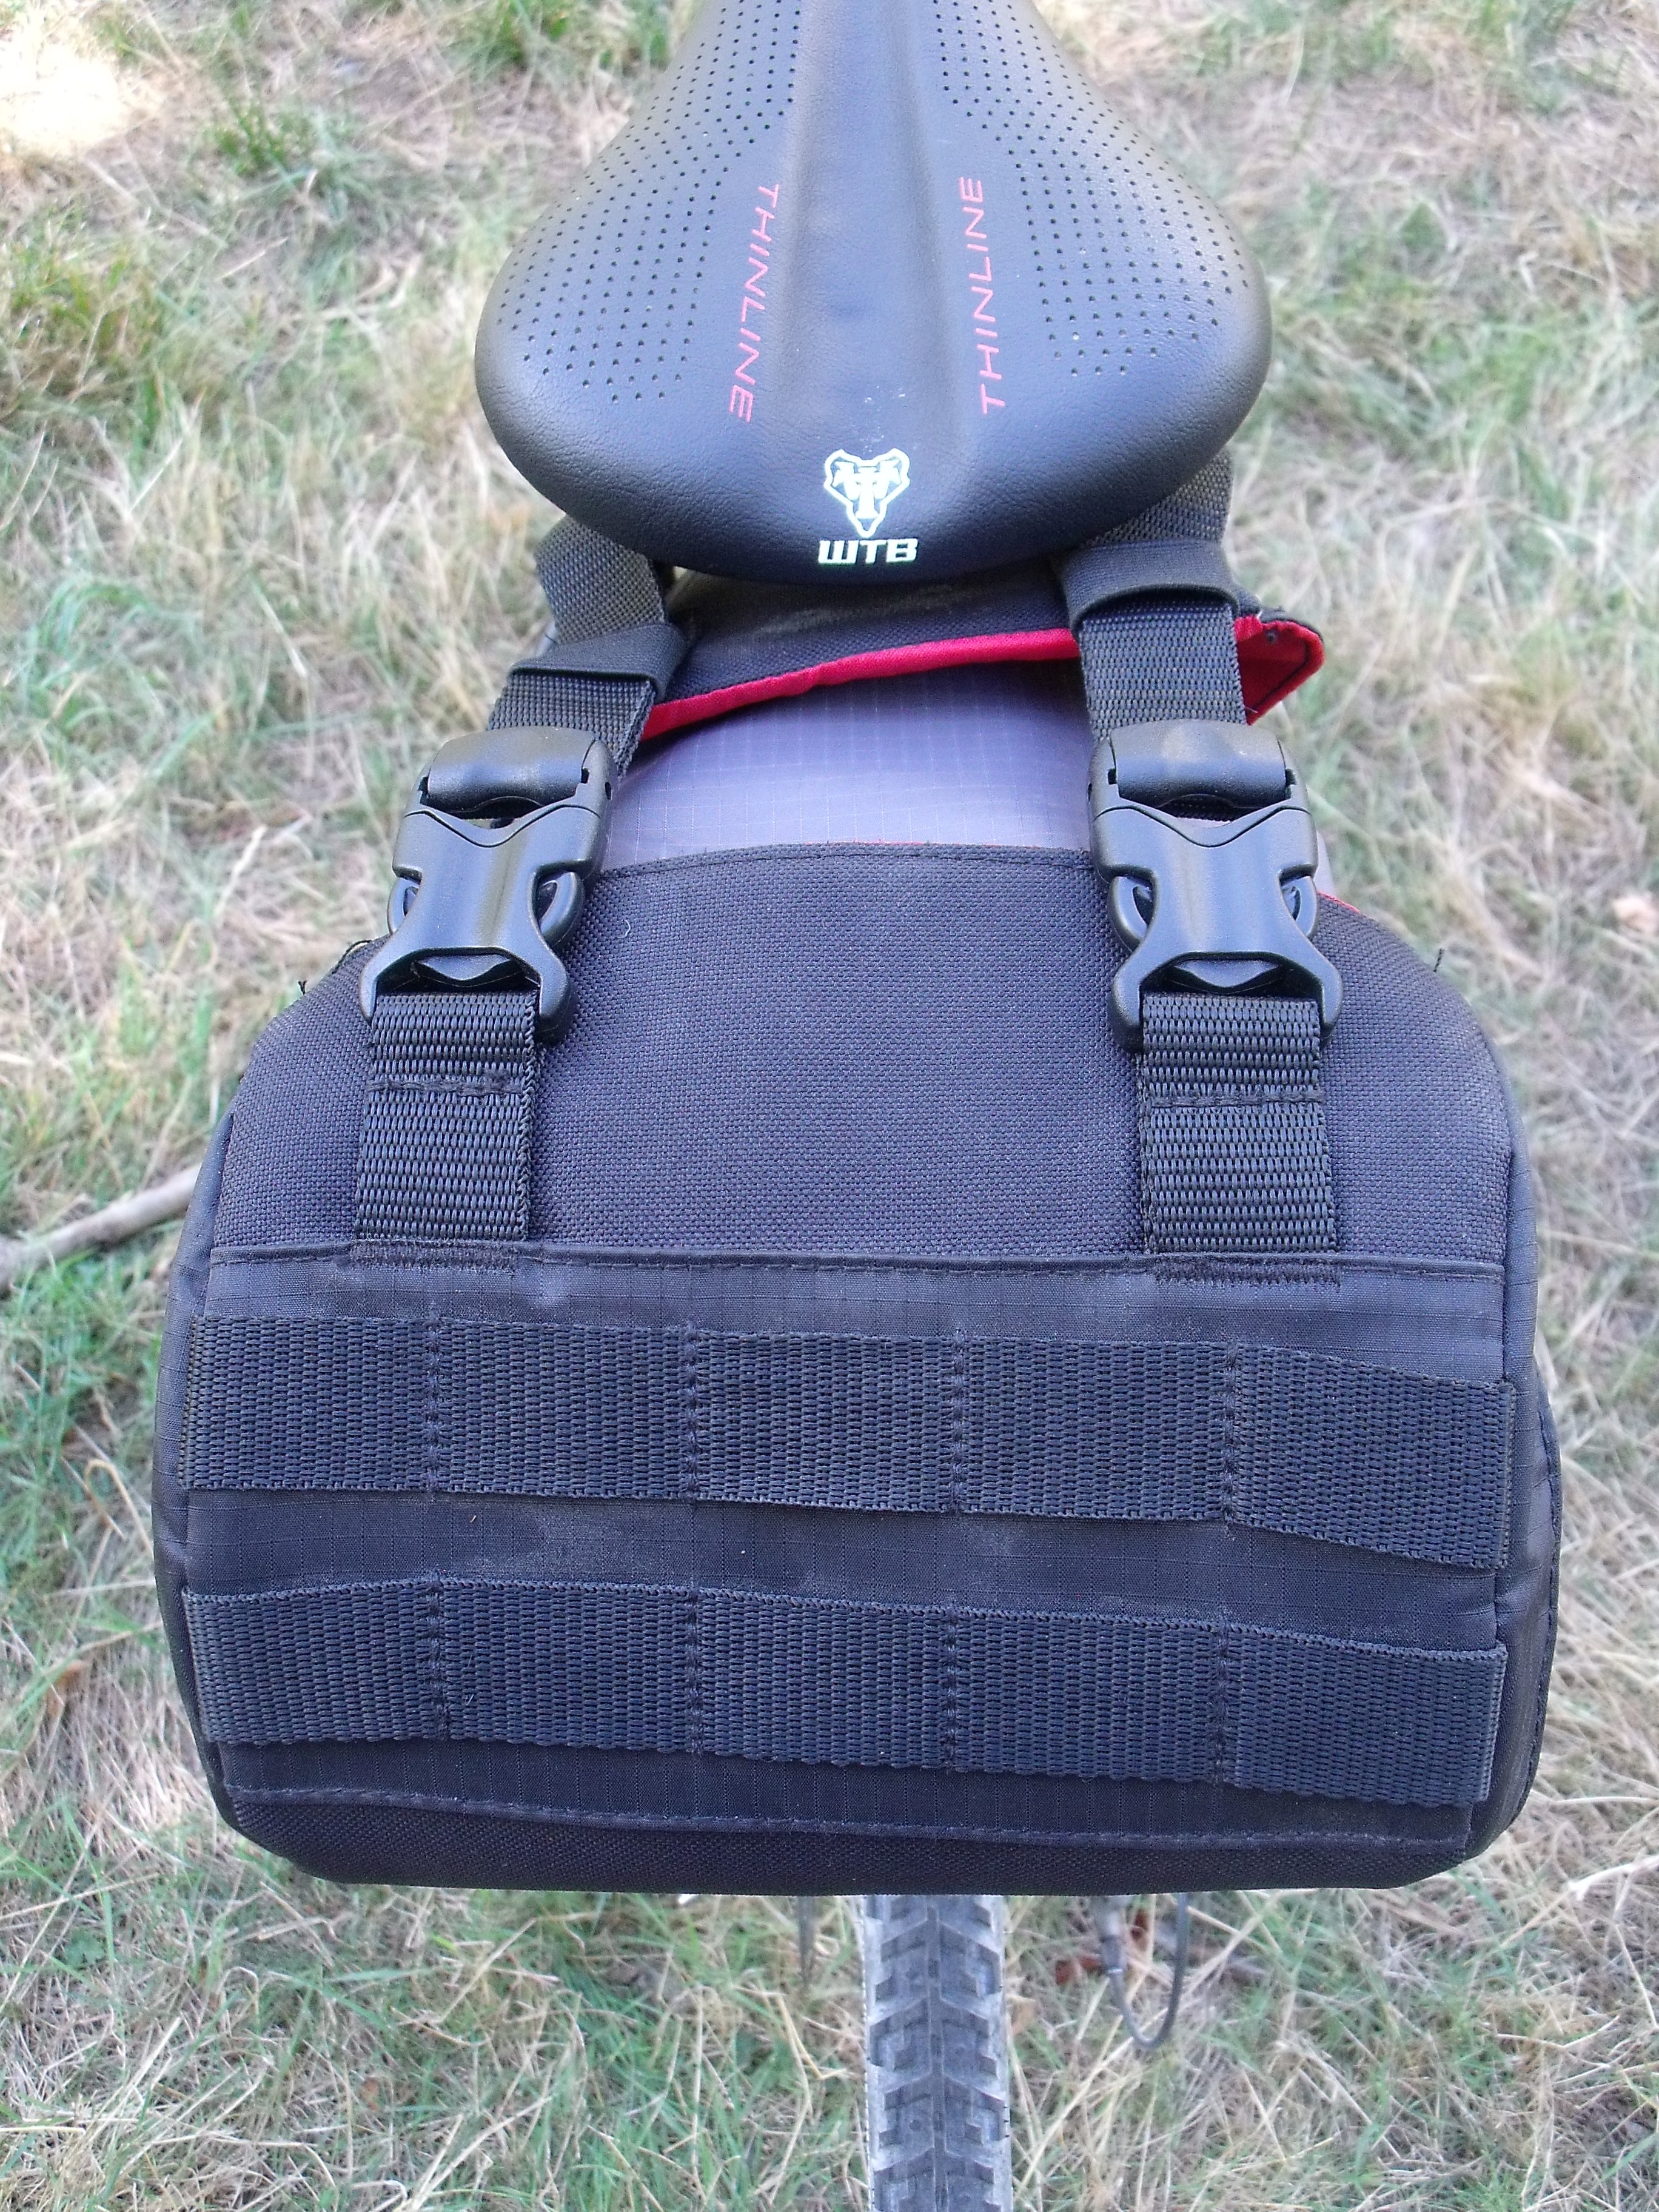 blackburn outpost seat pack review